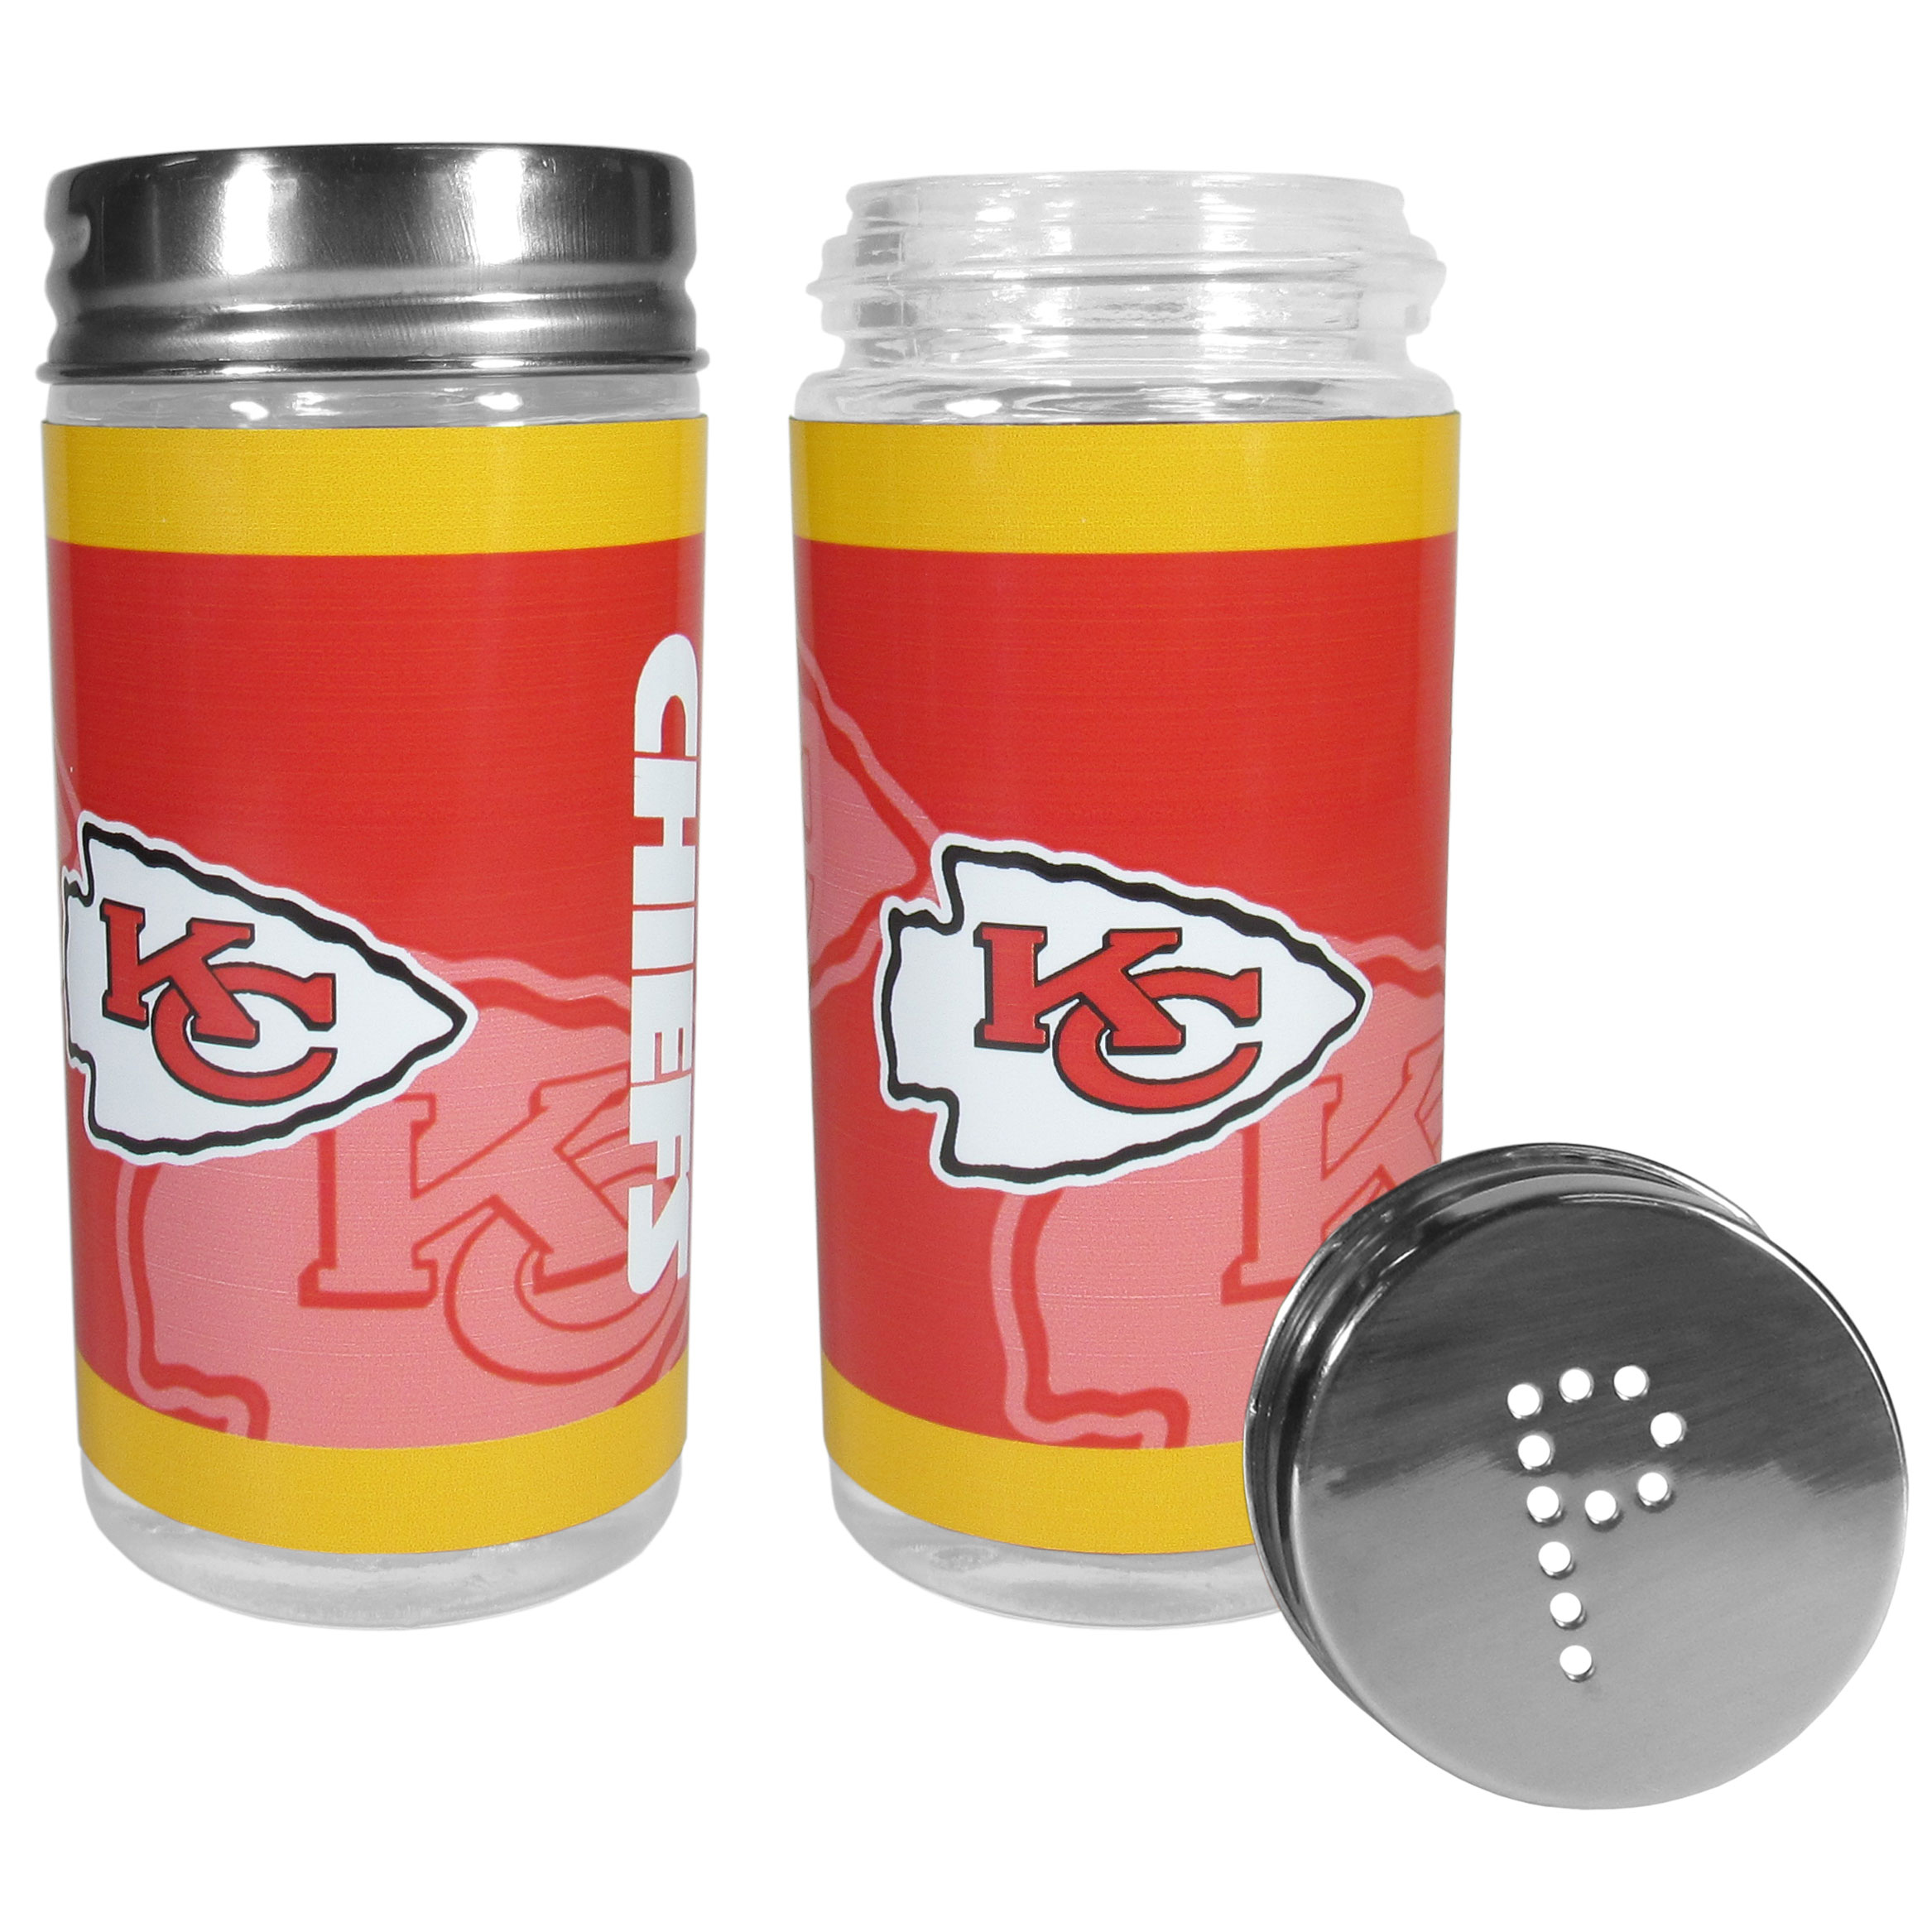 Kansas City Chiefs Tailgater Salt & Pepper Shakers - No tailgate party is complete without your Kansas City Chiefs salt & pepper shakers featuring bright team graphics. The glass shakers are 3.75 inches tall and the screw top lids have holes that spell out P and S. These team shakers are a great grill accessory whether you are barbecuing on the patio, picnicing or having a game day party.